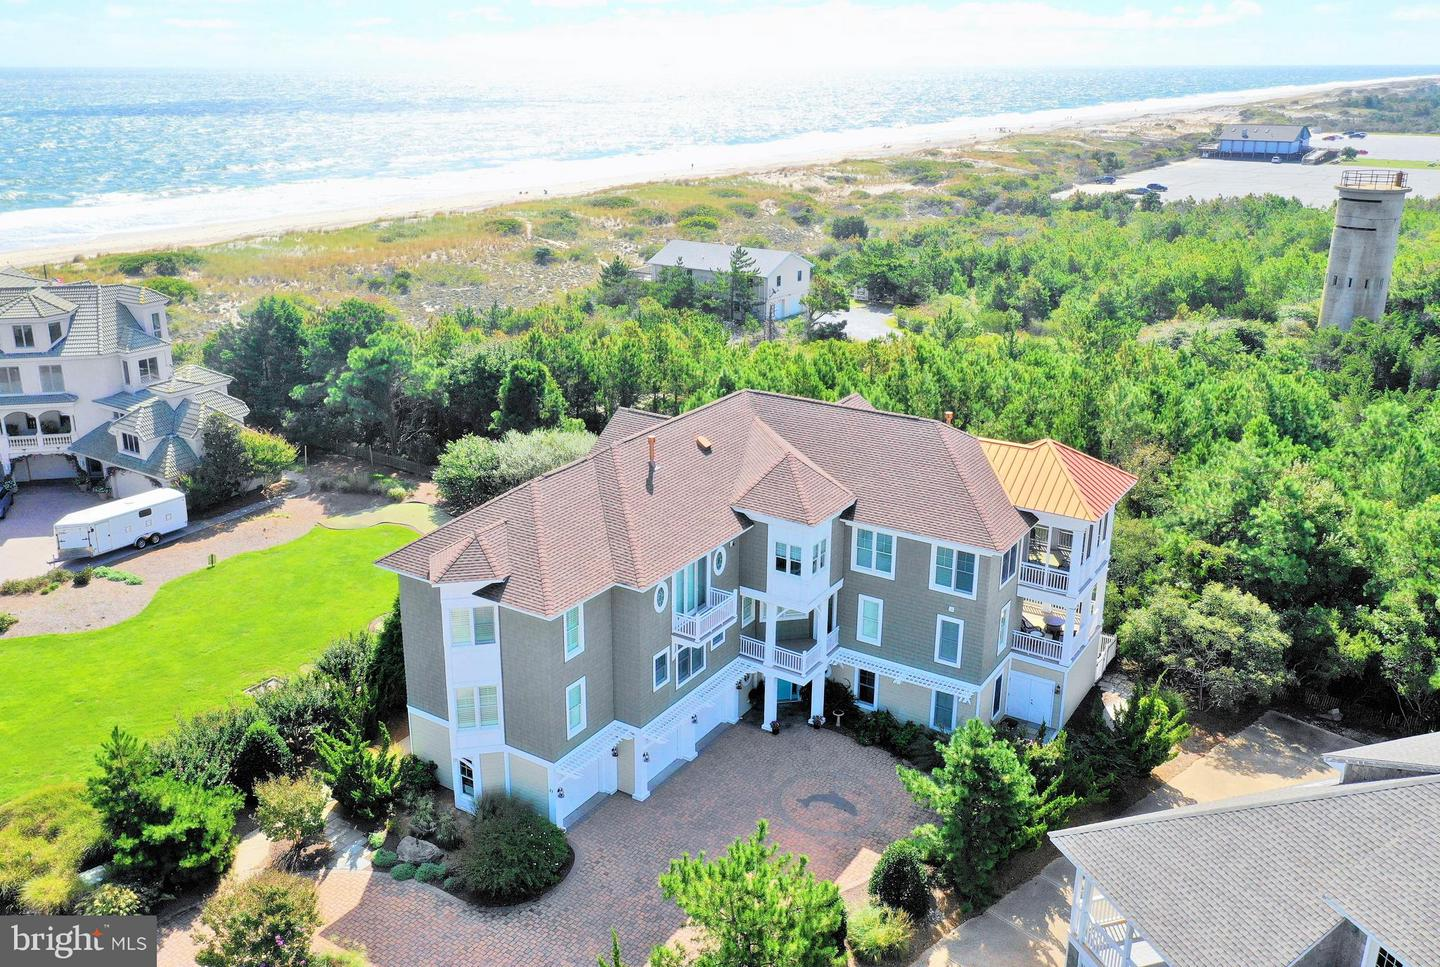 1002293530-300720129237-2018-09-25-15-08-25 31 Hall Ave | Rehoboth Beach, DE Real Estate For Sale | MLS# 1002293530  - Jack Lingo REALTOR